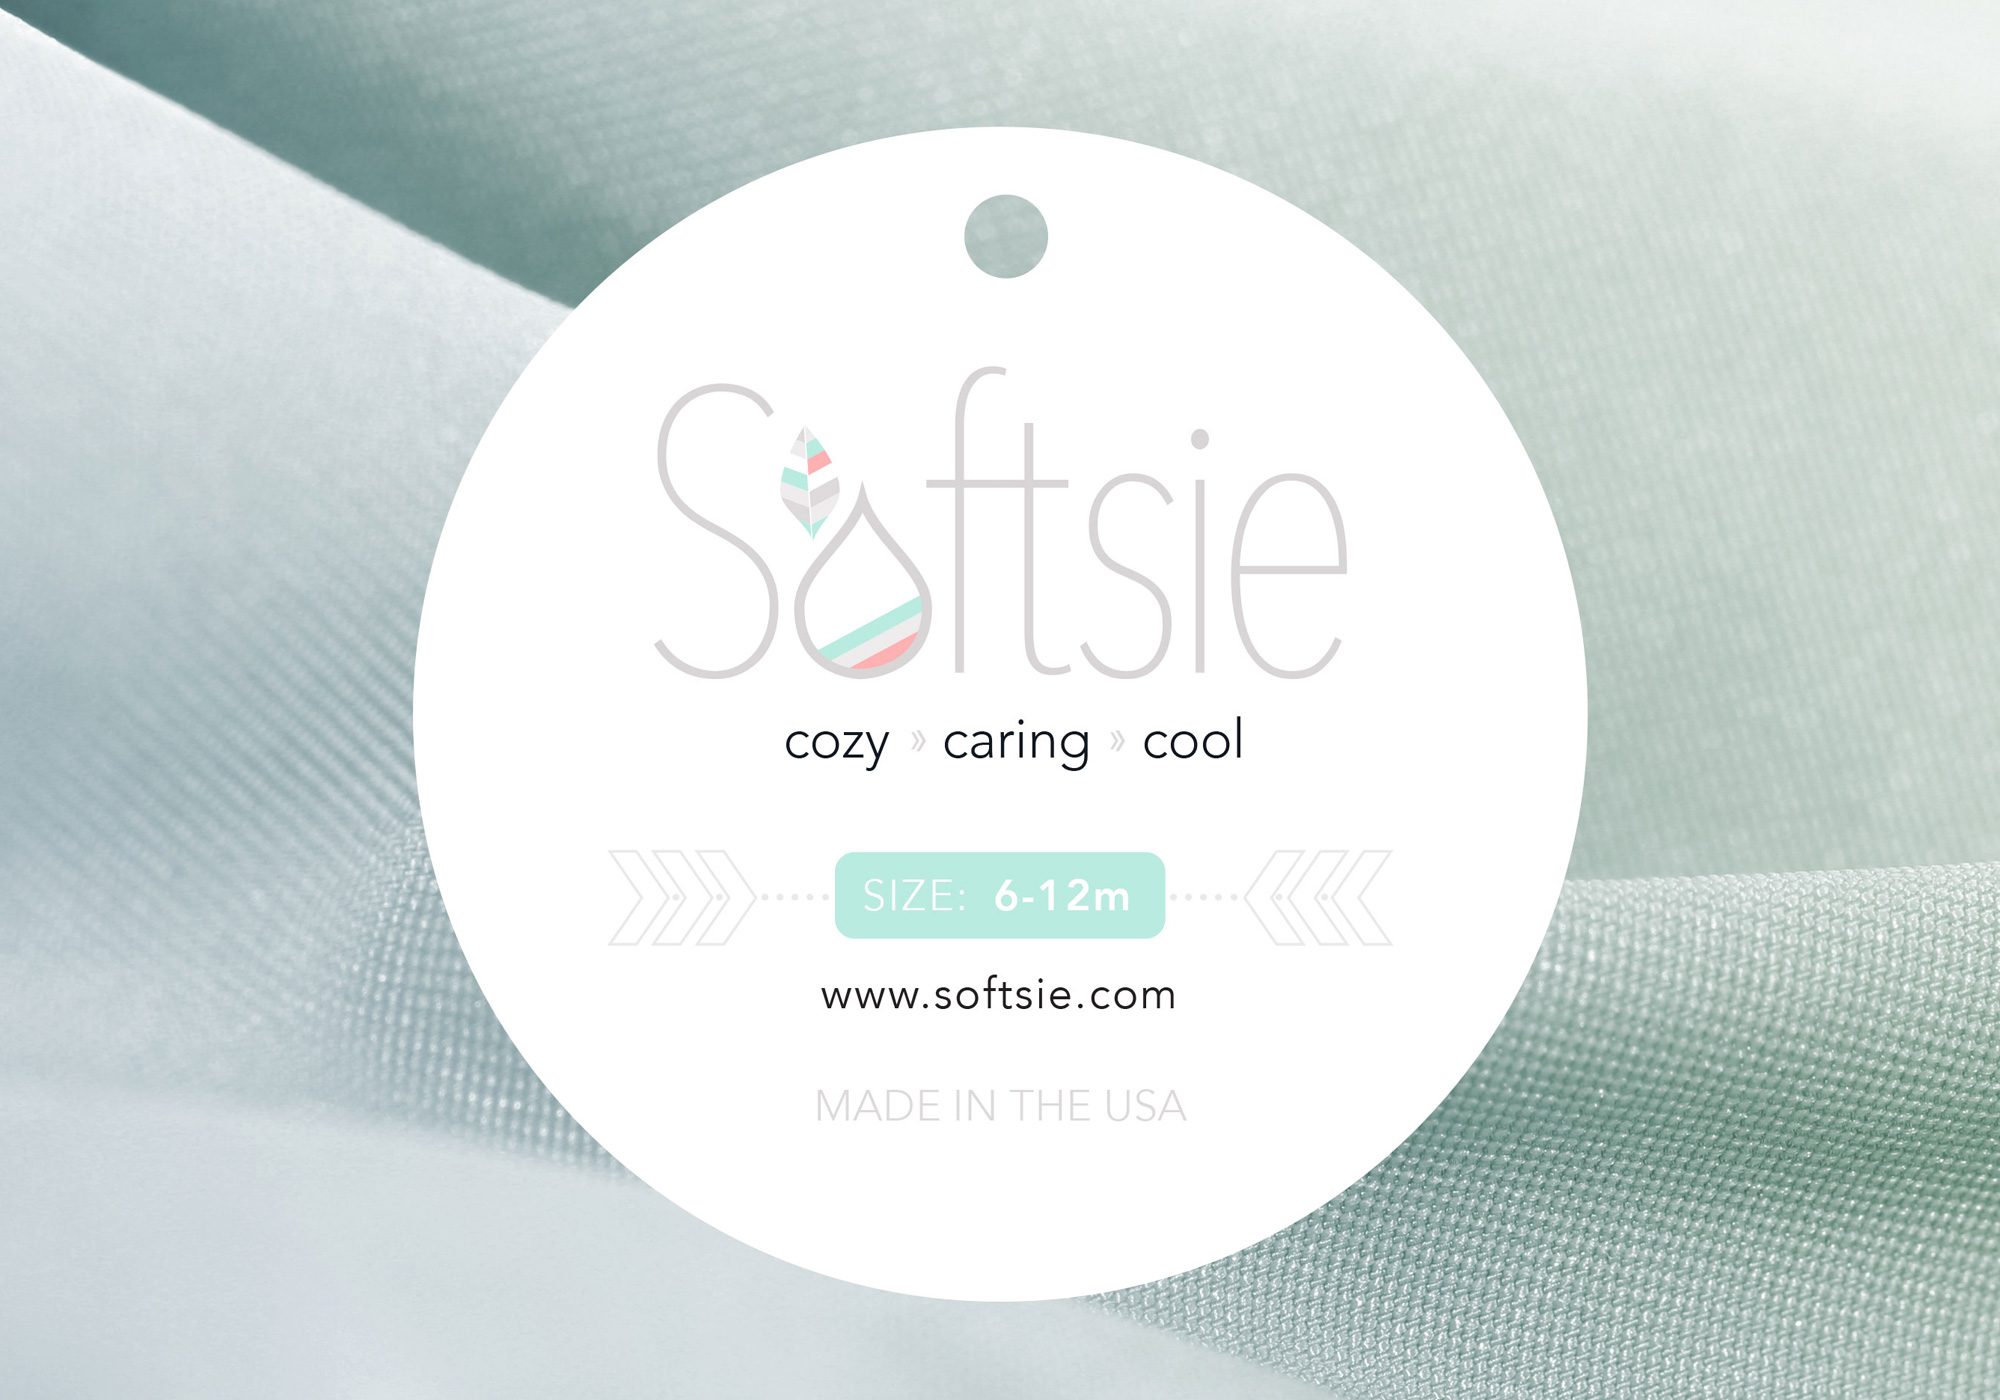 Softsie - Tag Design